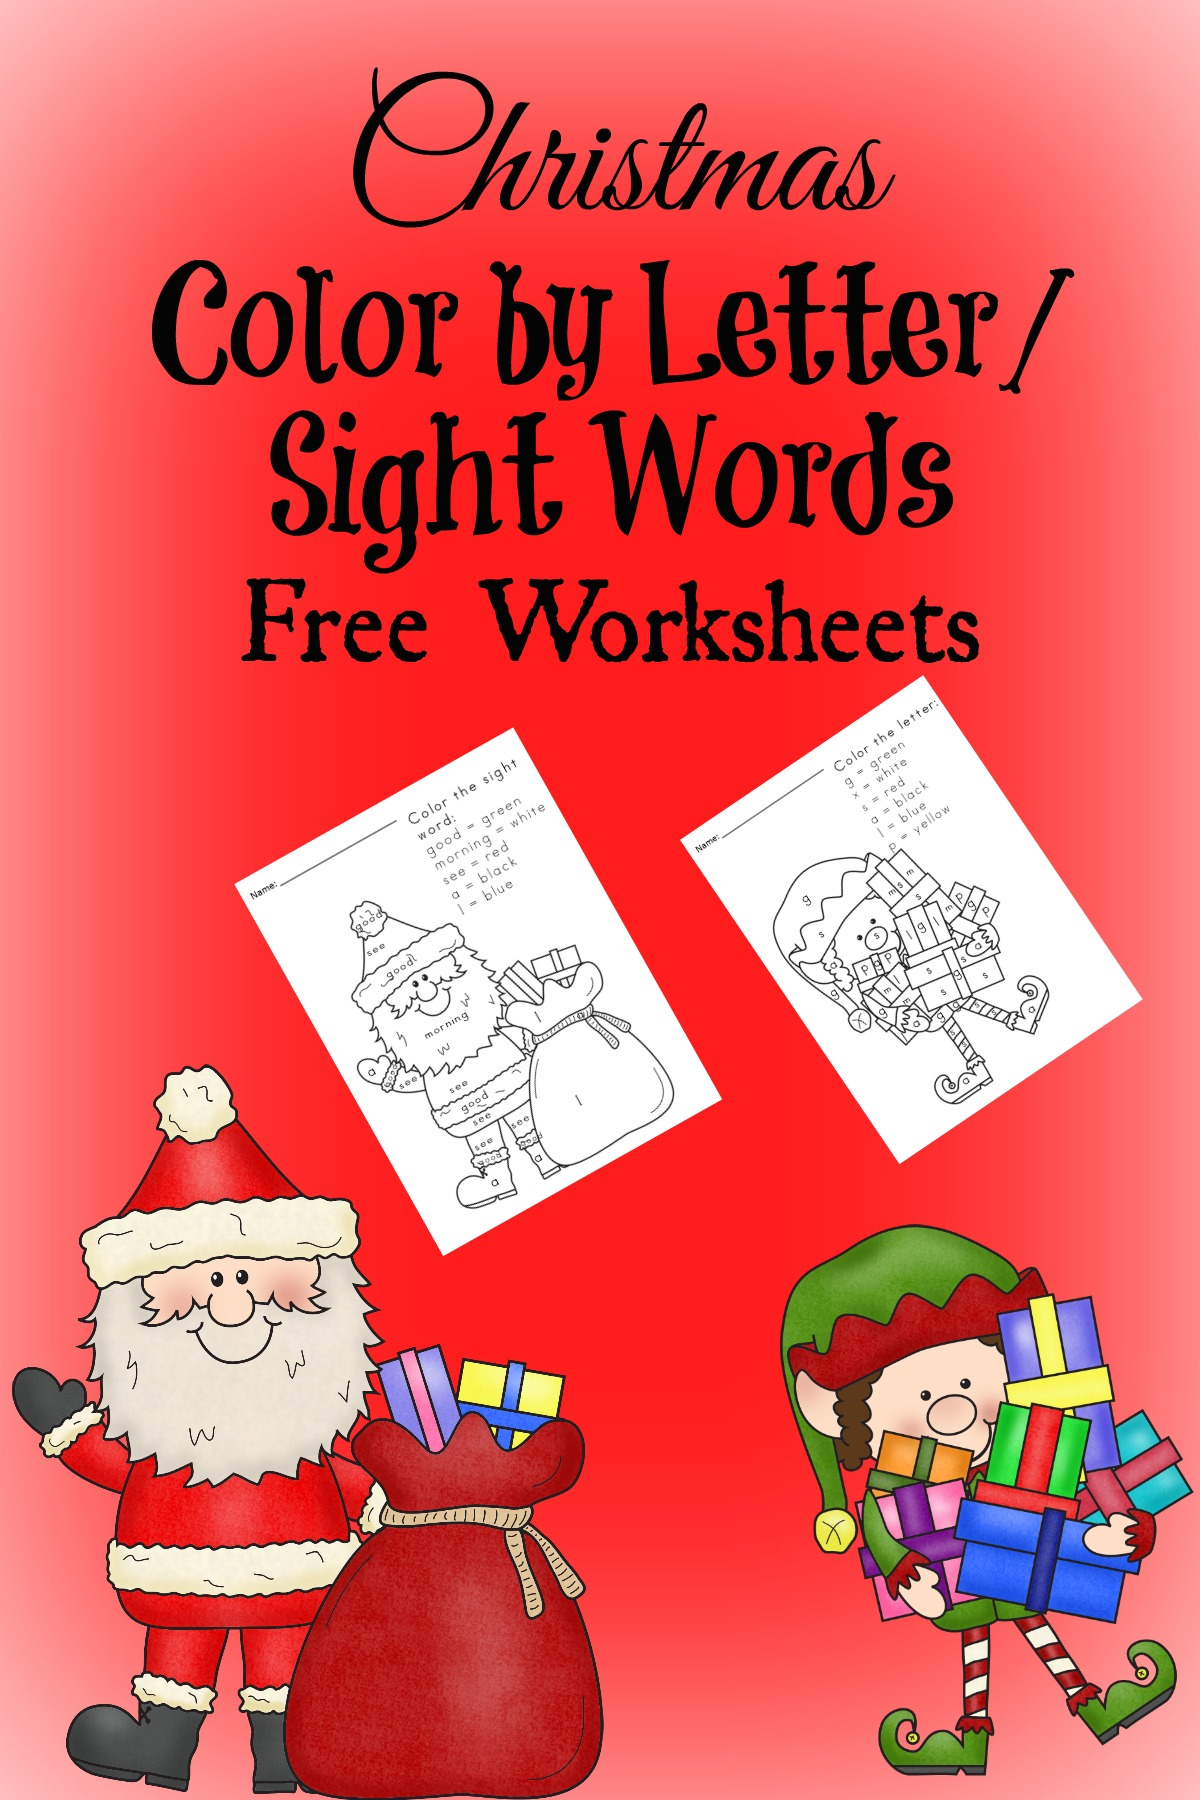 Free Christmas Worksheets For Kids Color By Letter Sight Word